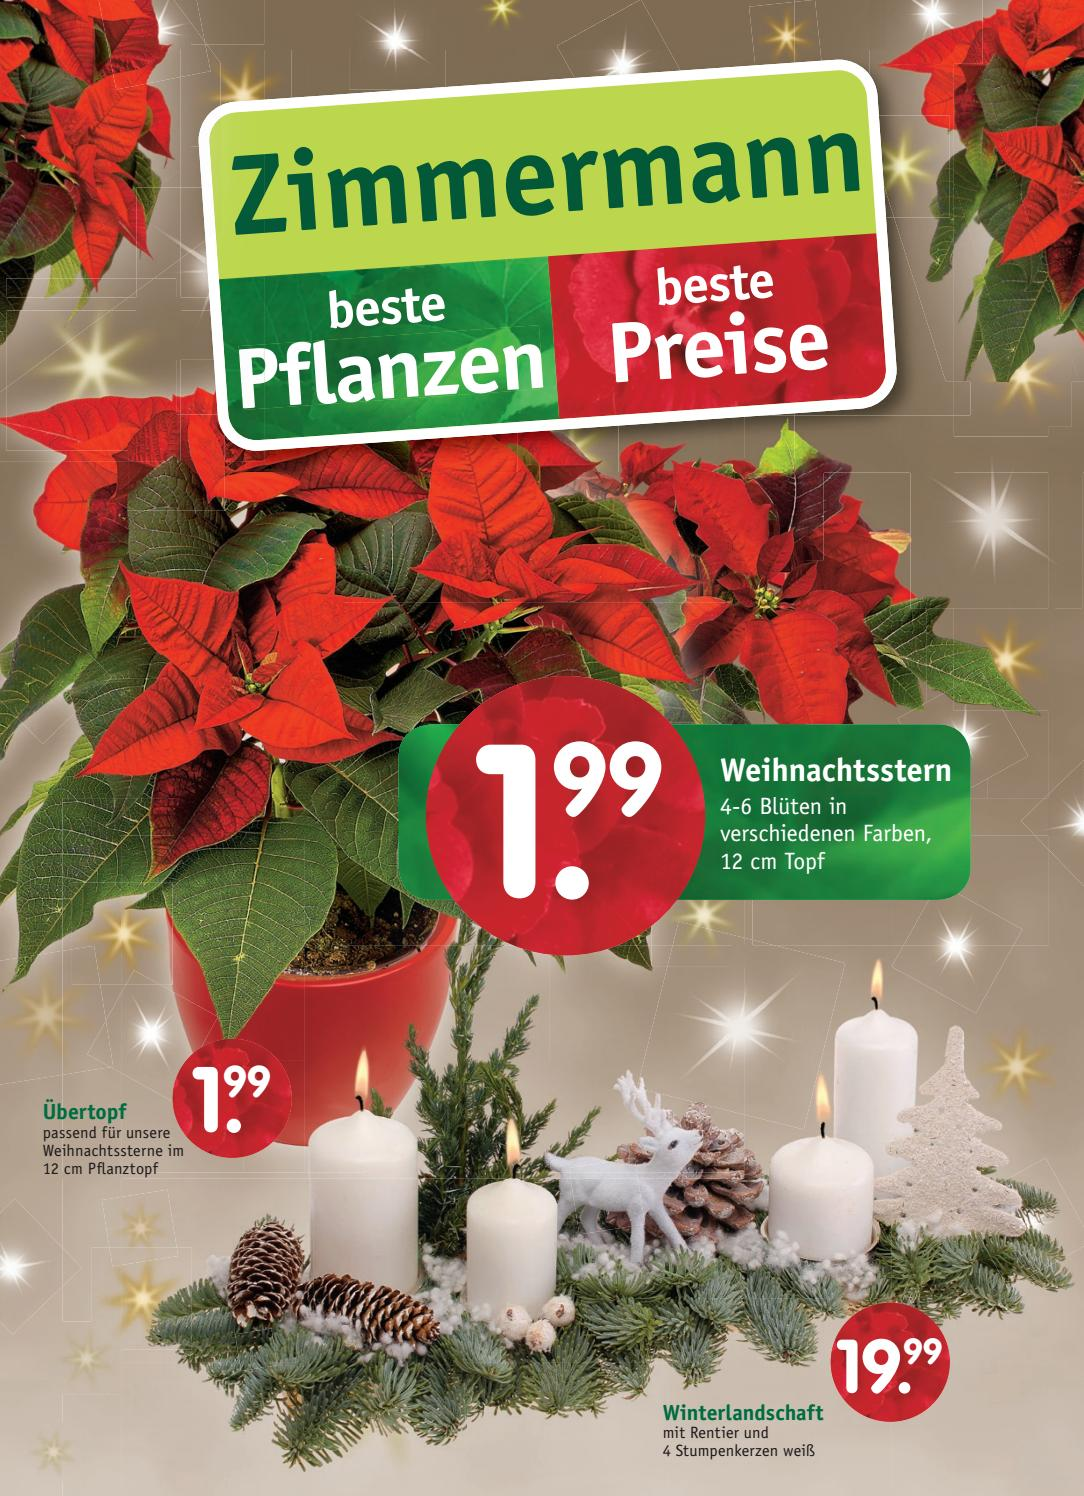 Adventskranz Stumpenkerzen 12 Cm Beilage November 2 2017 Pflanzencenter Zimmermann